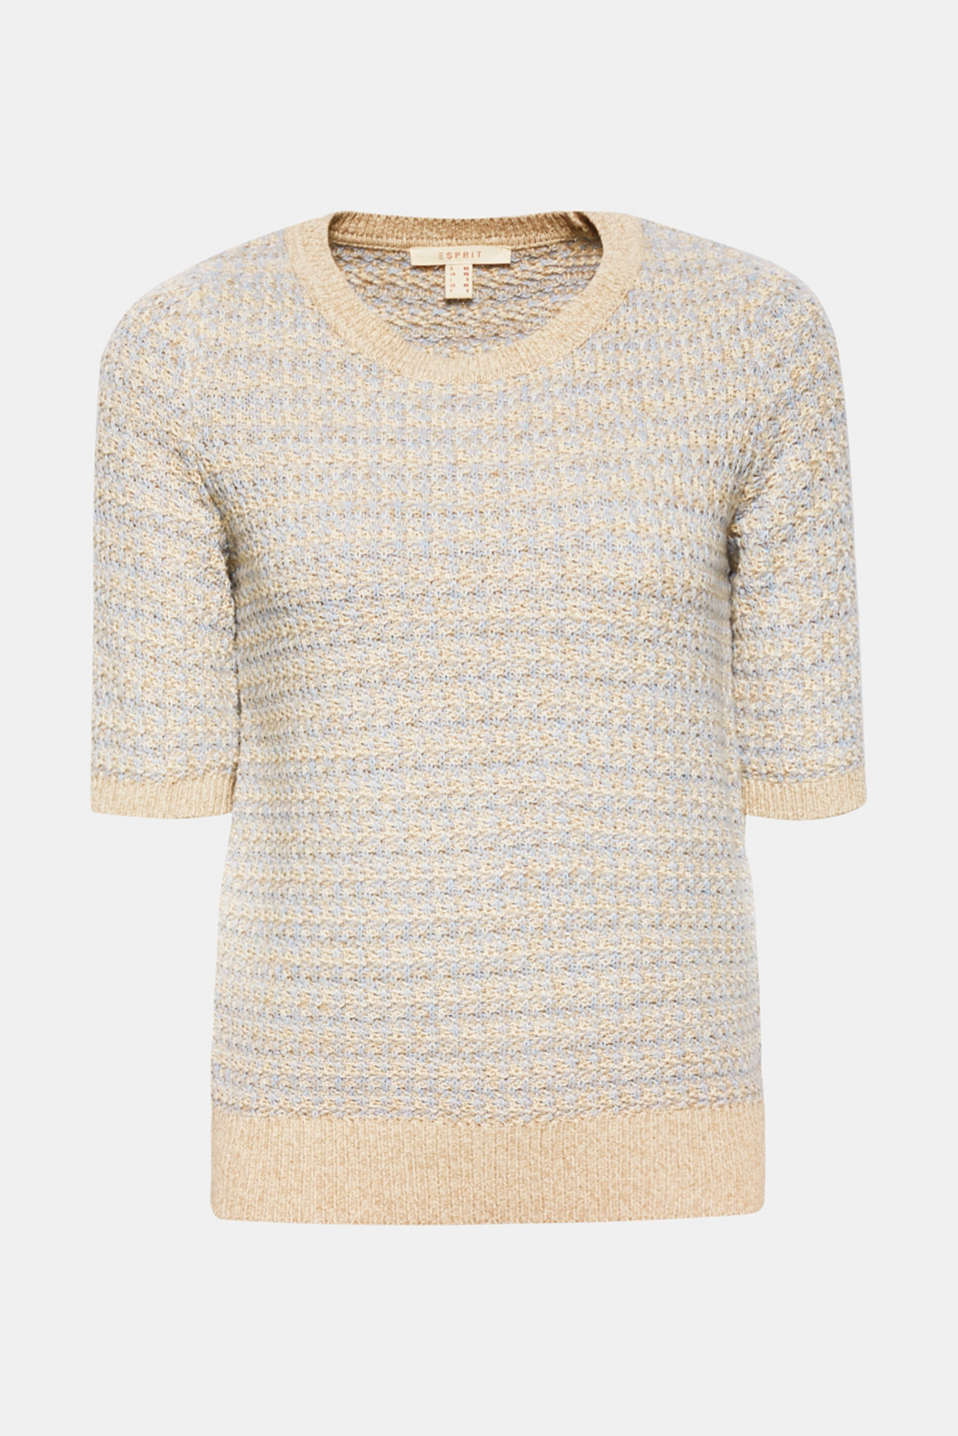 Short-sleeved jumper with a two-tone texture, CREAM BEIGE 2, detail image number 6